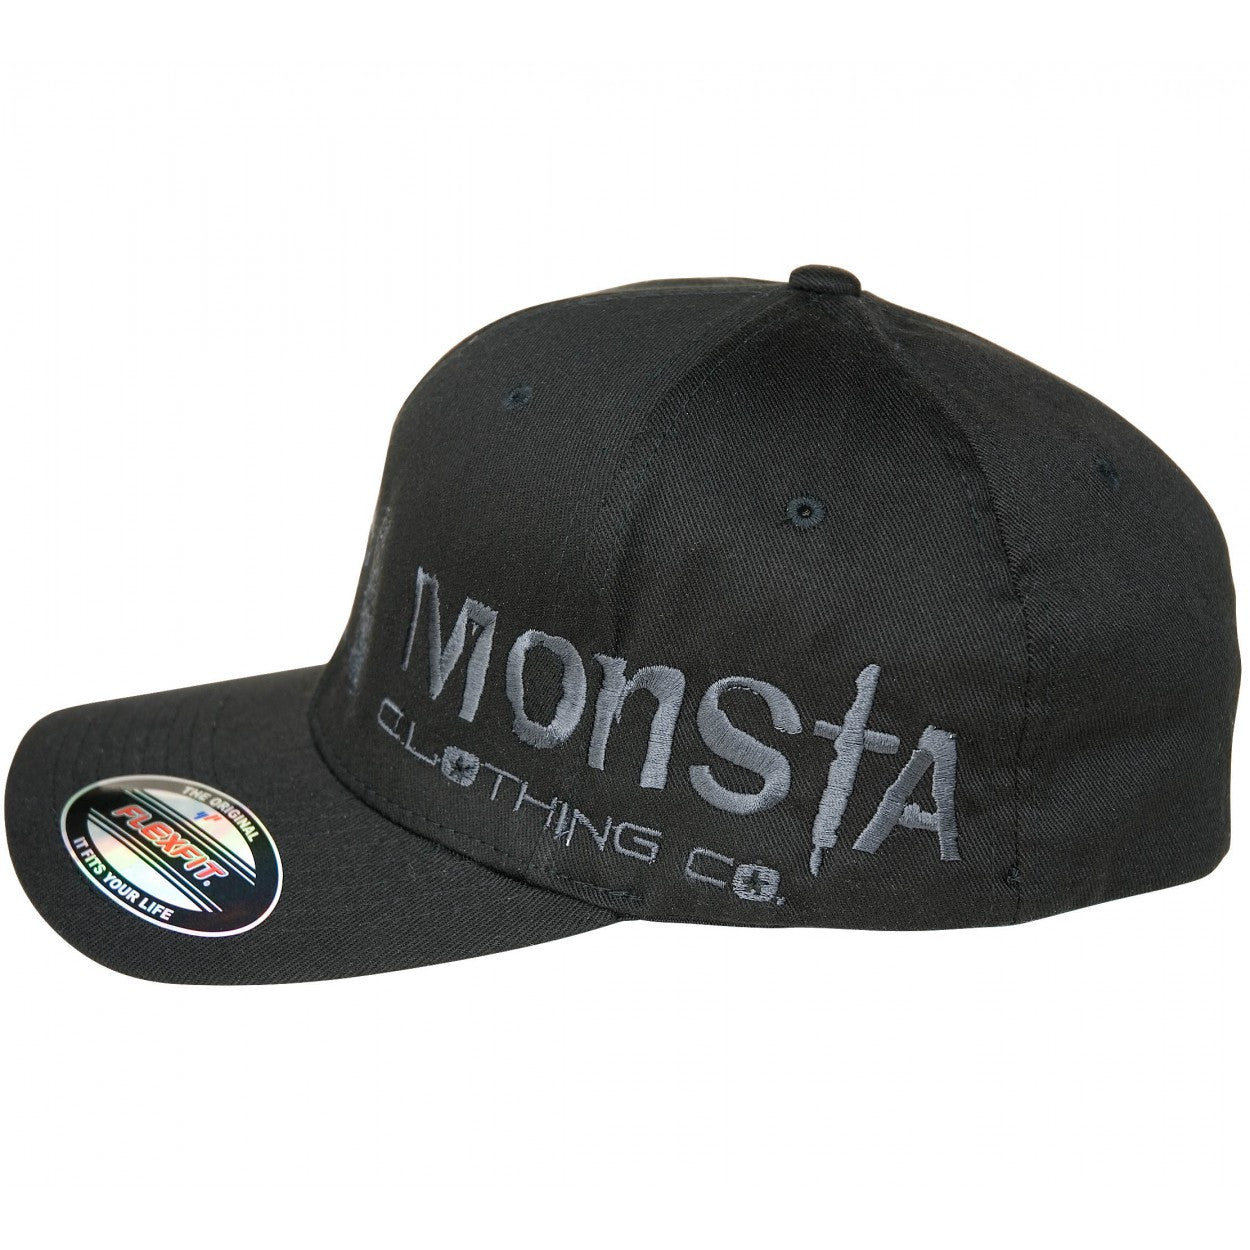 Cap: Flexfit CurvedBill-906 - Monsta Clothing Australia